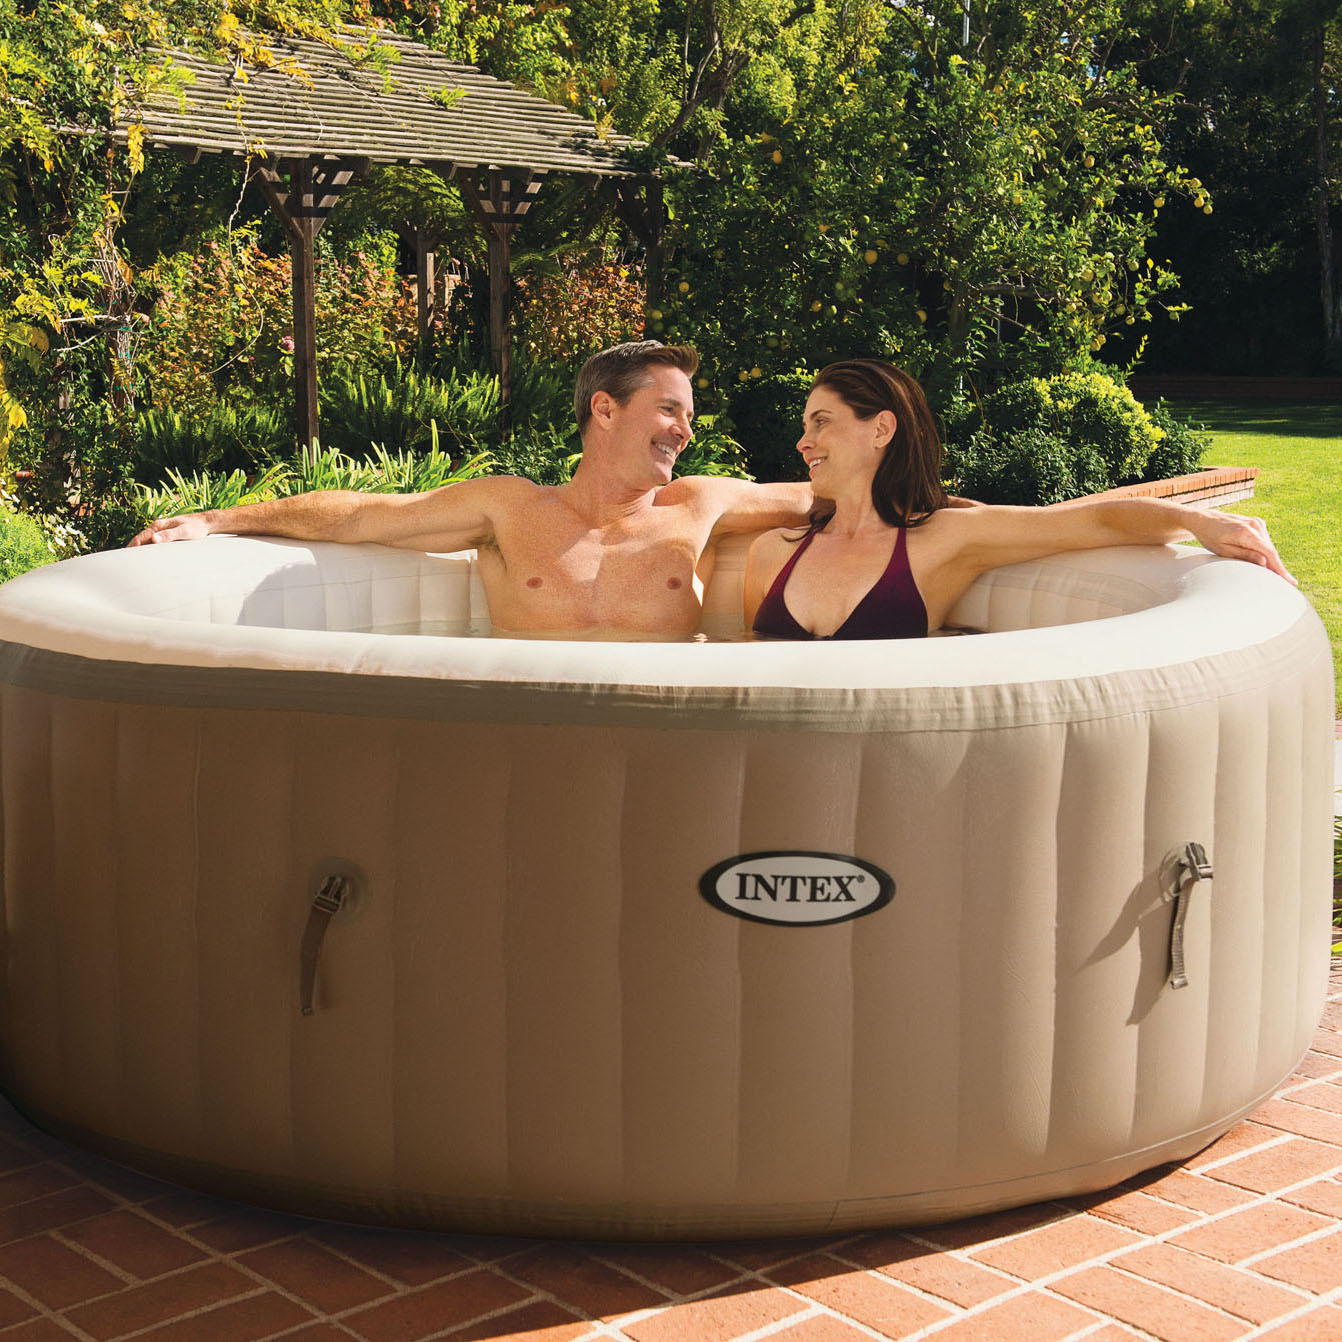 Intex PureSpa 4-Person Inflatable Bubble Jet Spa Portable Hot Tub ...